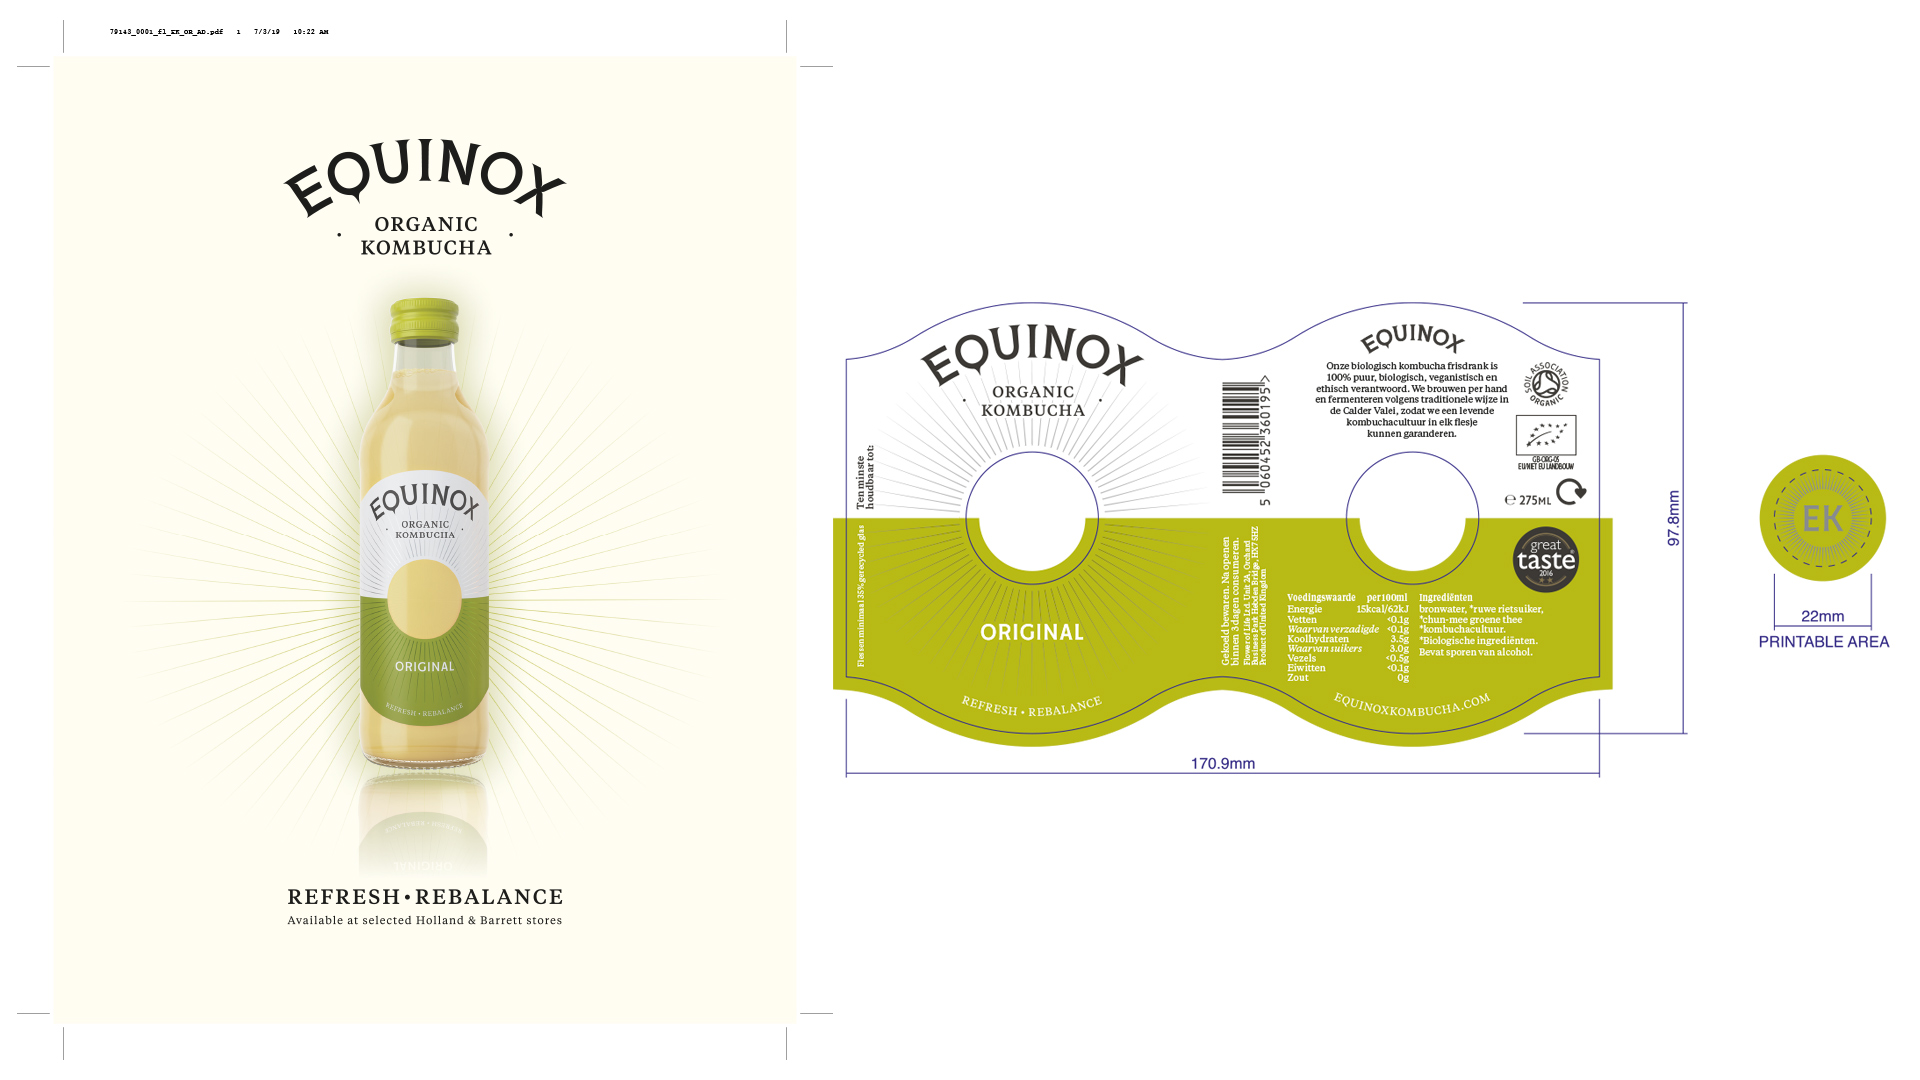 Equinox-bottle-artwork-packaging-food-repro